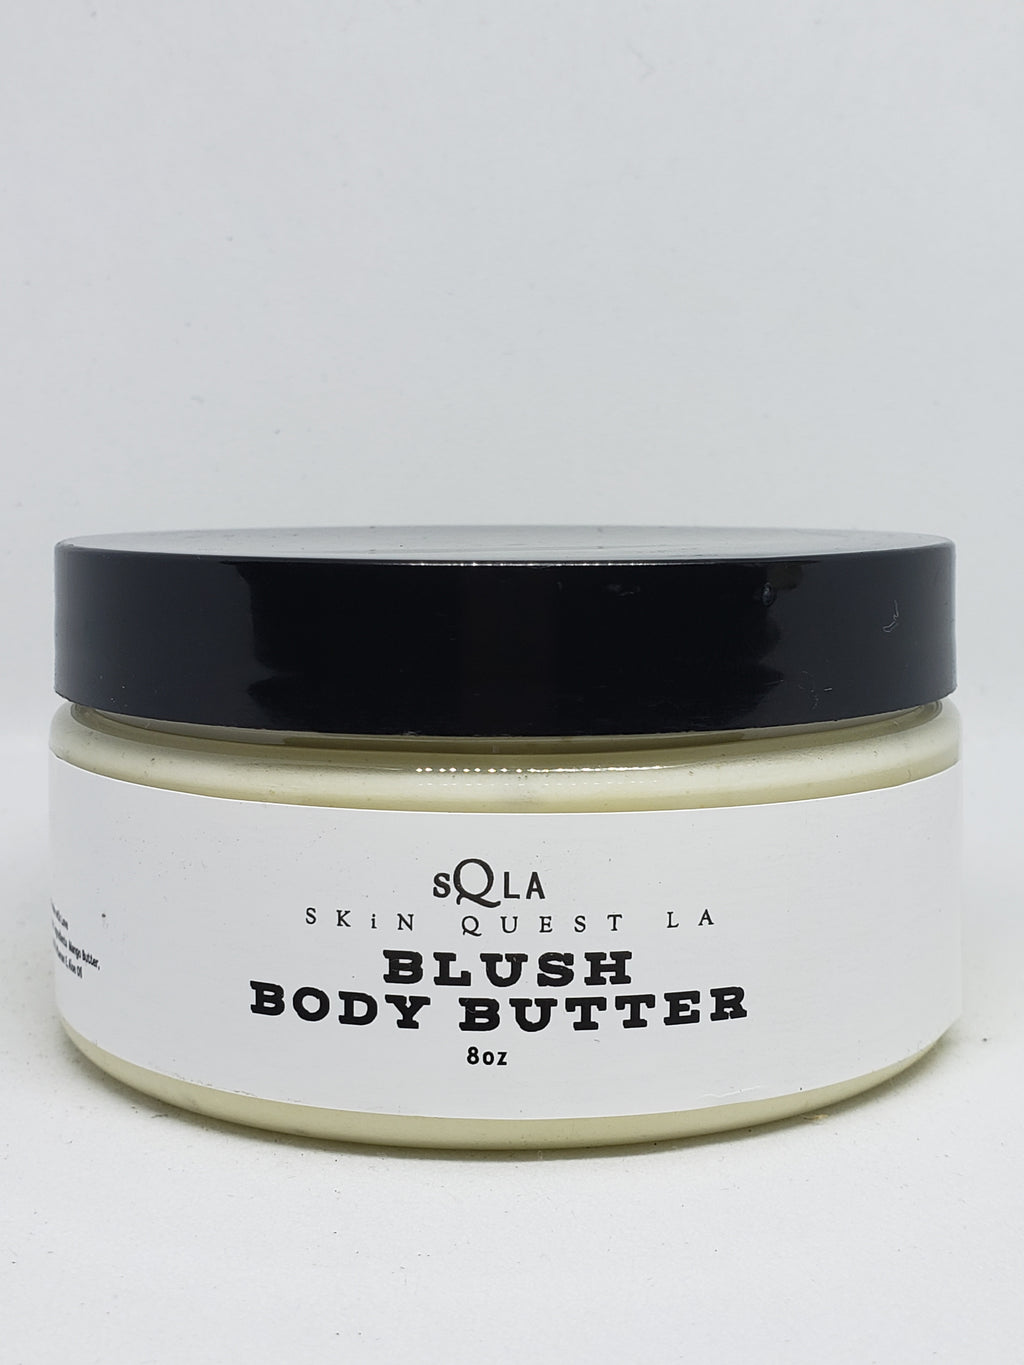 Blush Body Butter